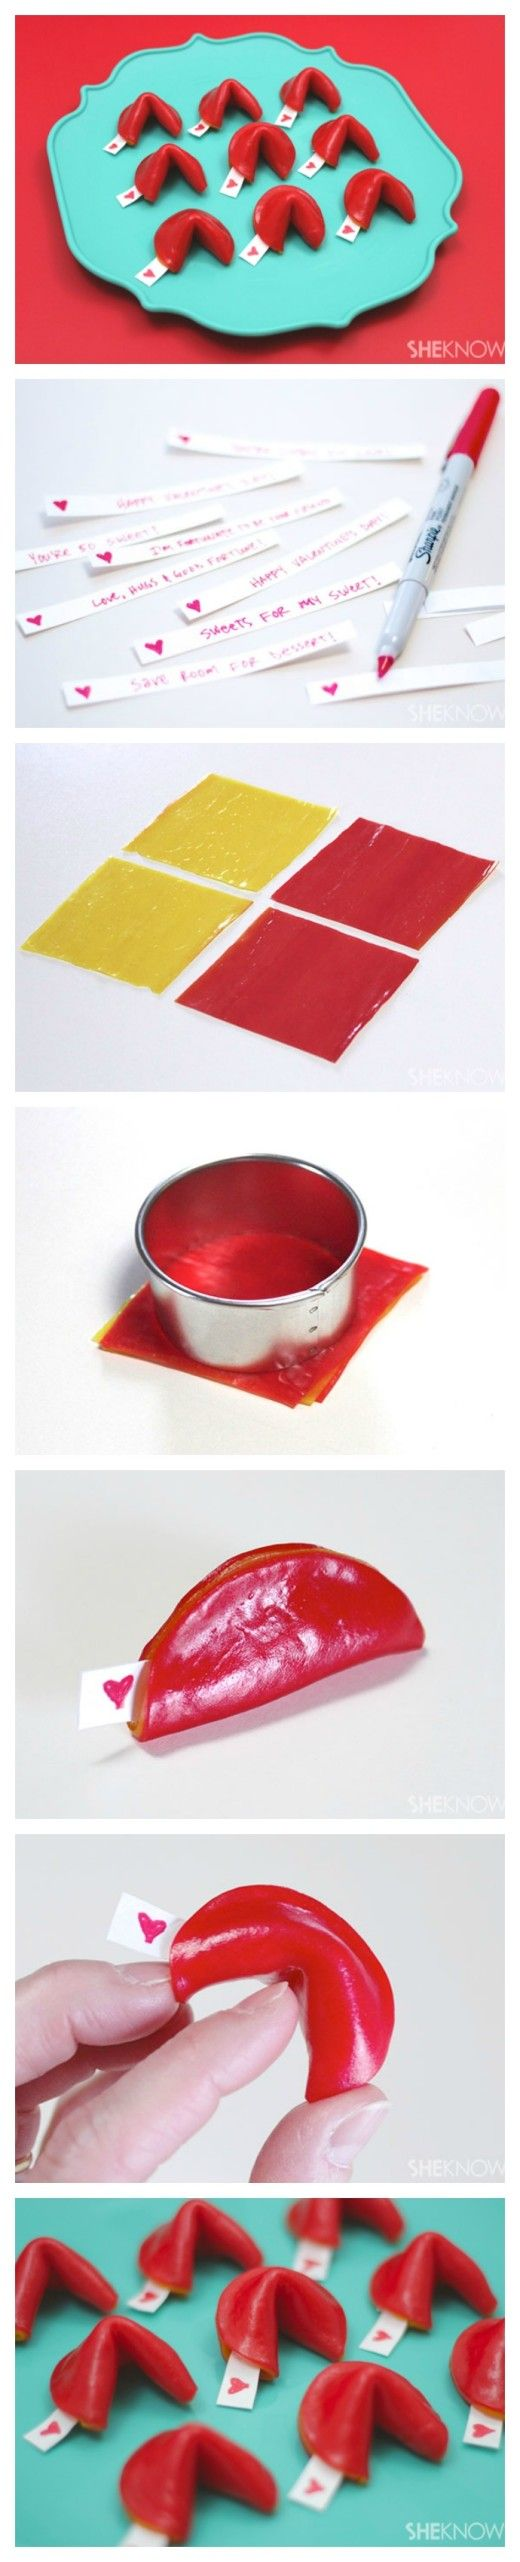 DIY Fruit Roll-Up Fortune Cookies | Valentines Day Ideas